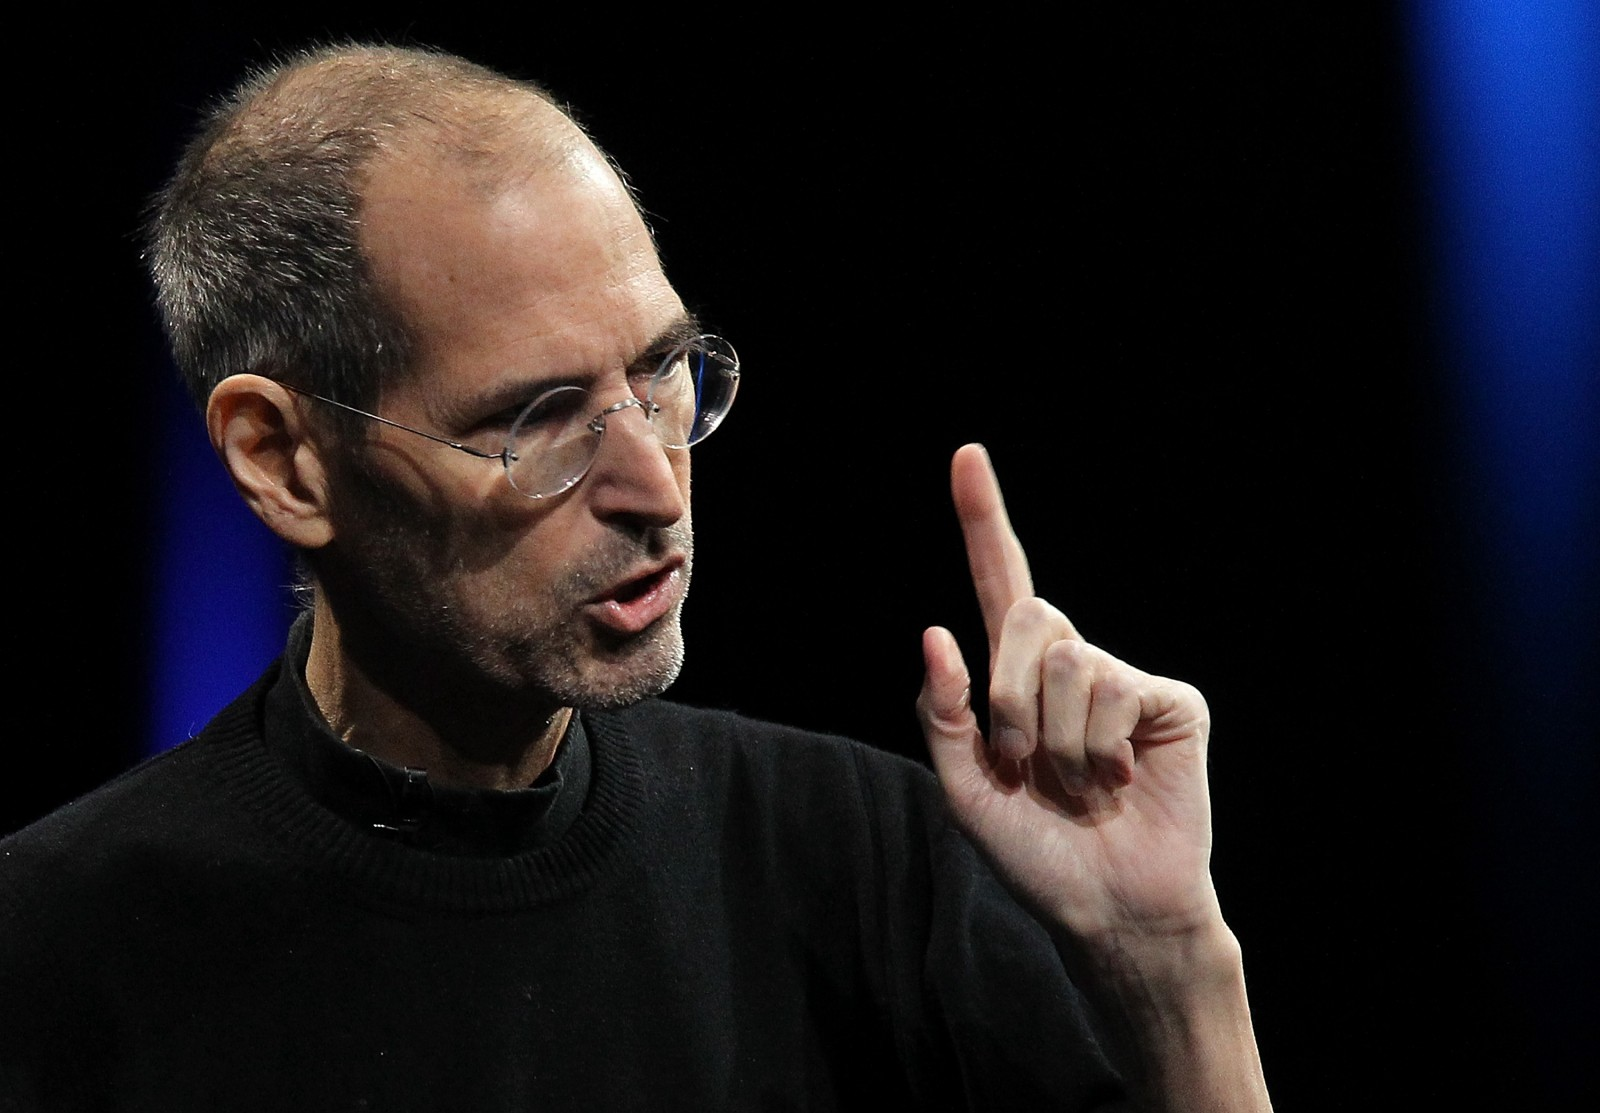 Steve Jobs (in case you didn't know)